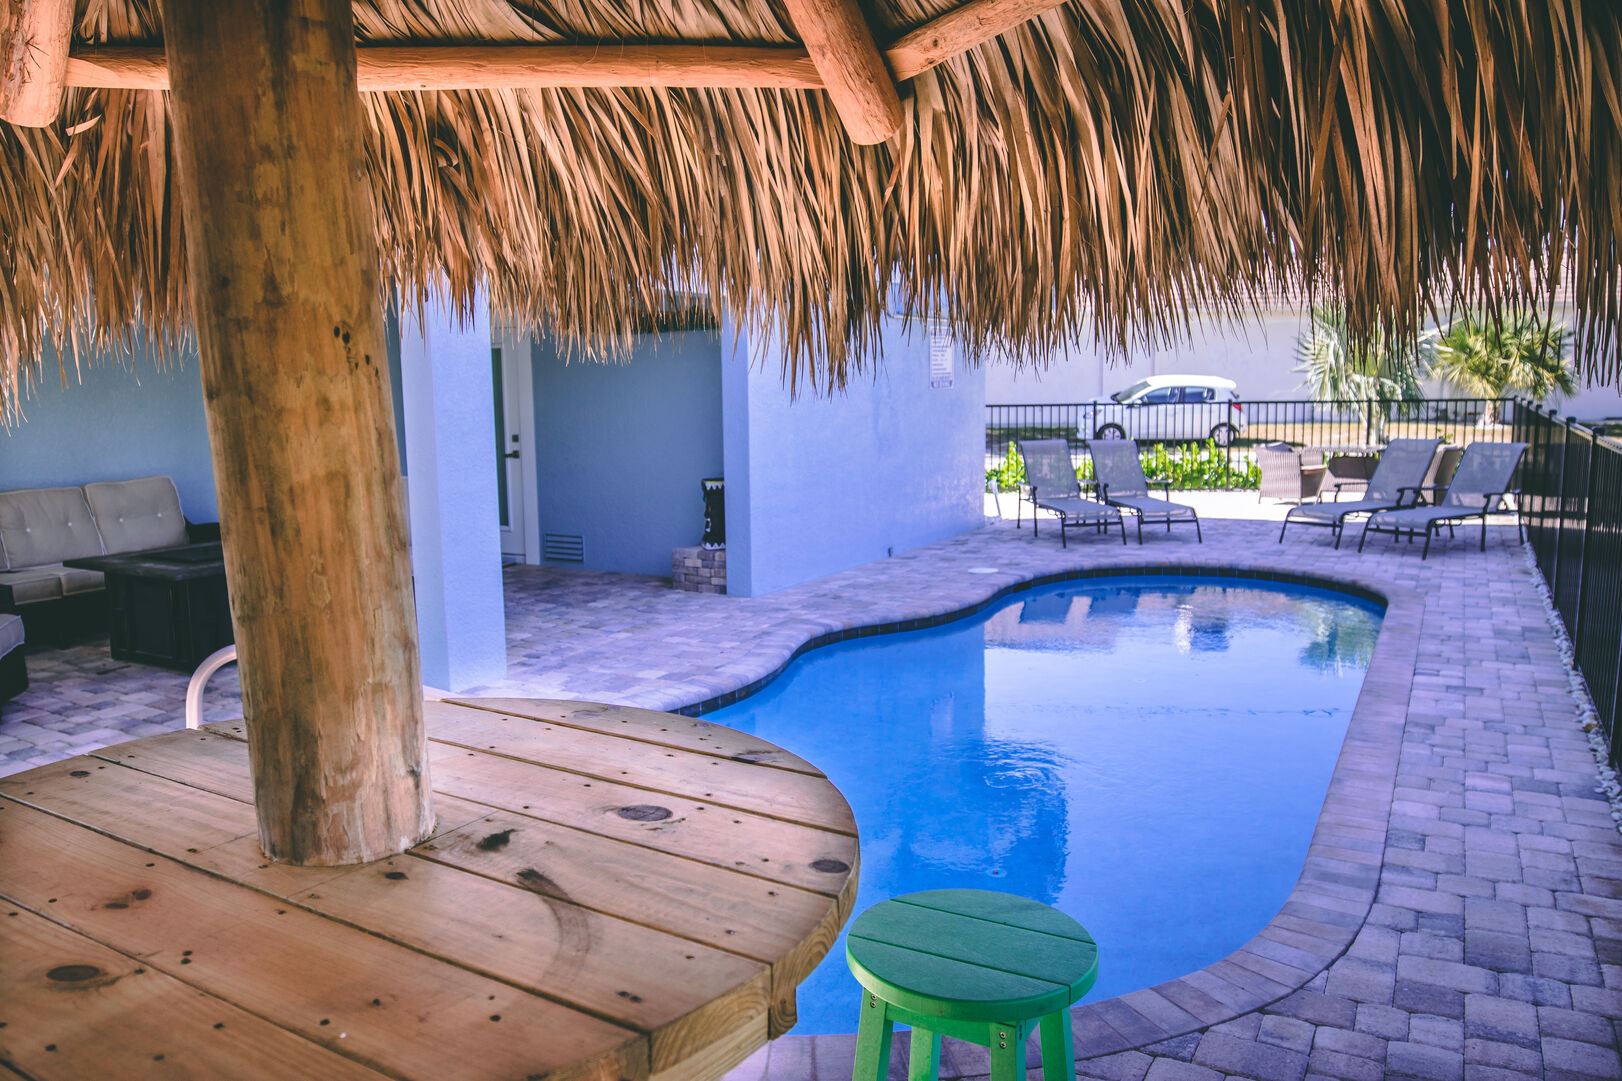 This vacation rental Fort Myers Beach Florida features a swimming pool